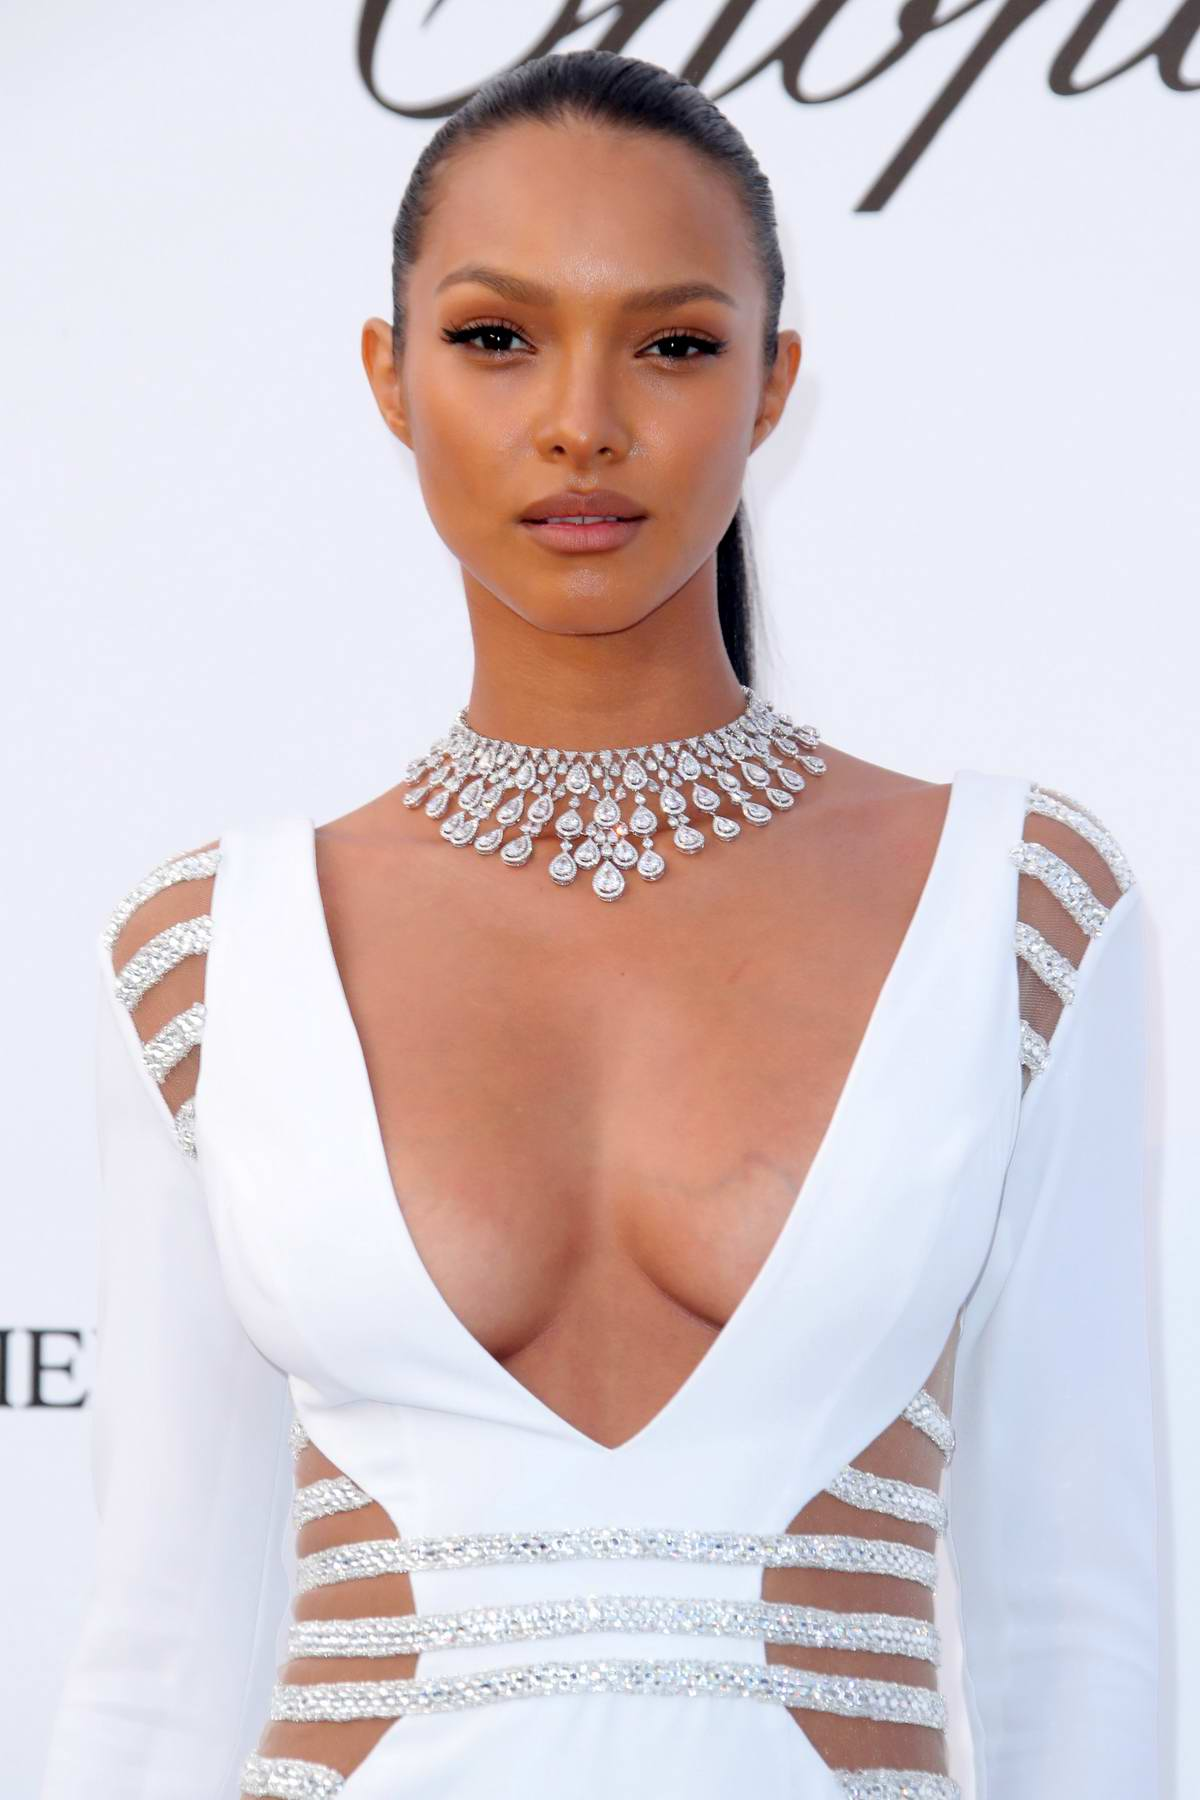 Lais Ribeiro at the amfAR's 25th Cinema Against AIDS Gala during 71st Cannes Film Festival, France